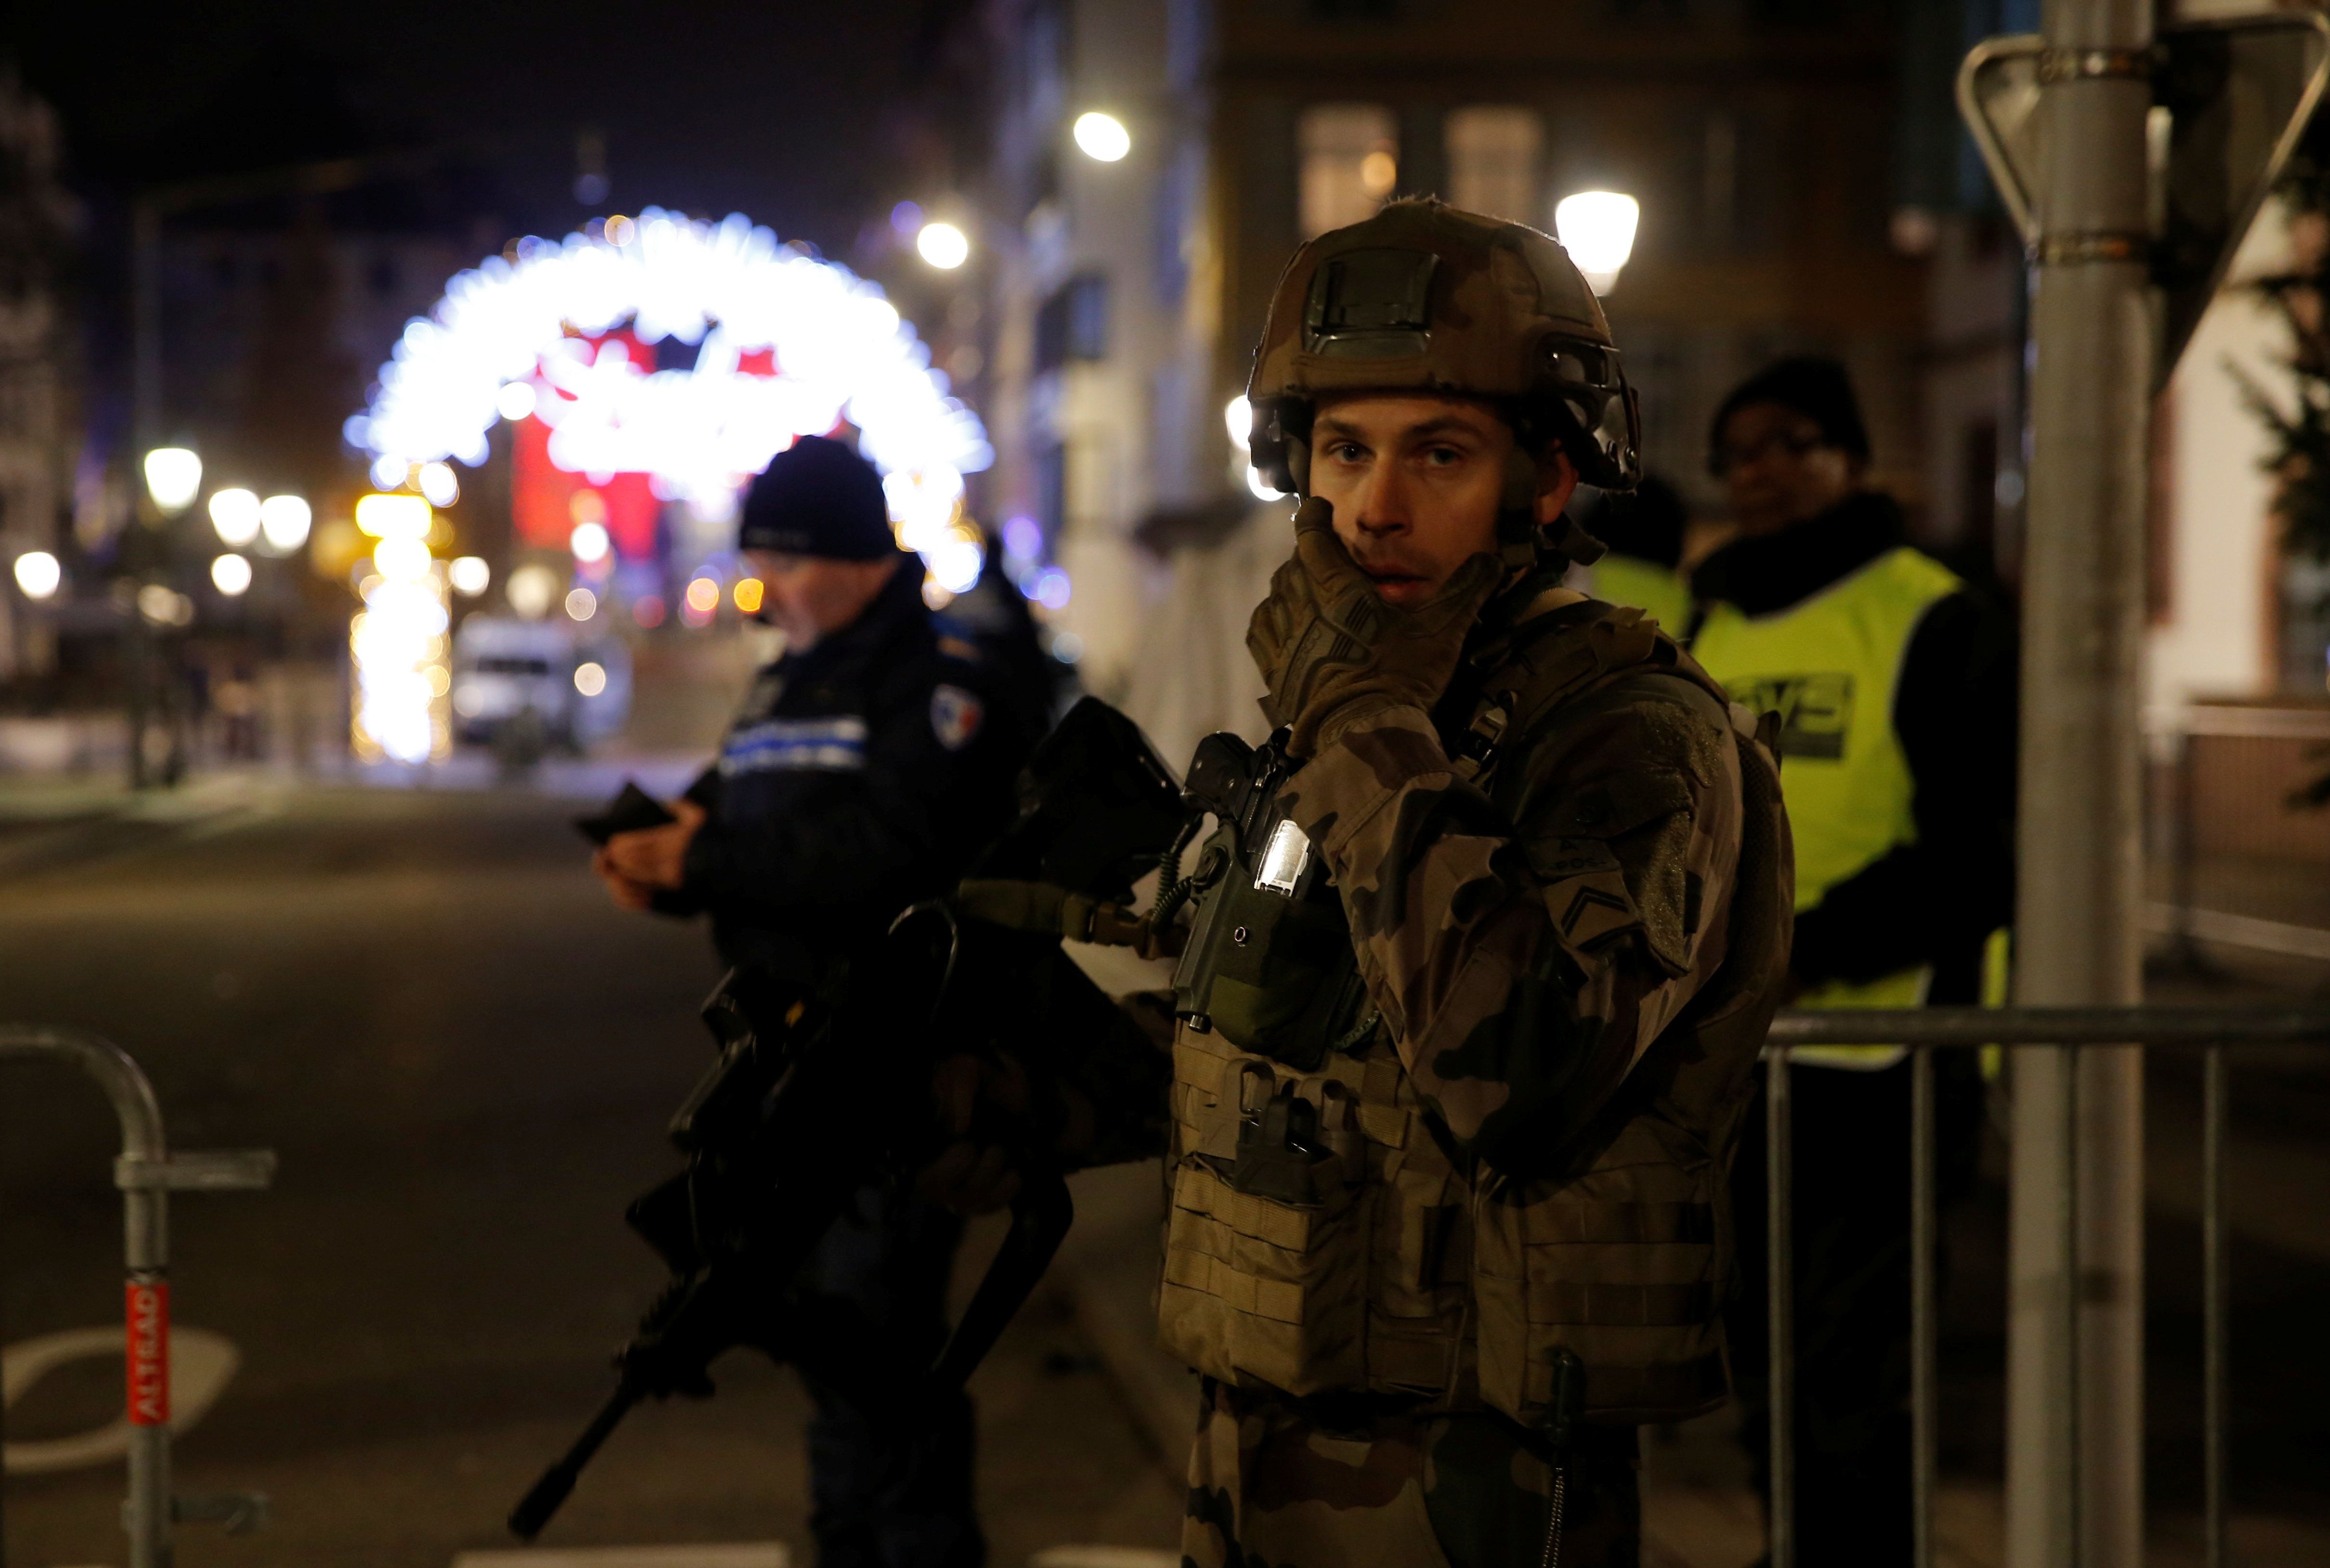 Strasbourg: 'Extremist' Gunman On The Run As Three Shot Dead Near Christmas